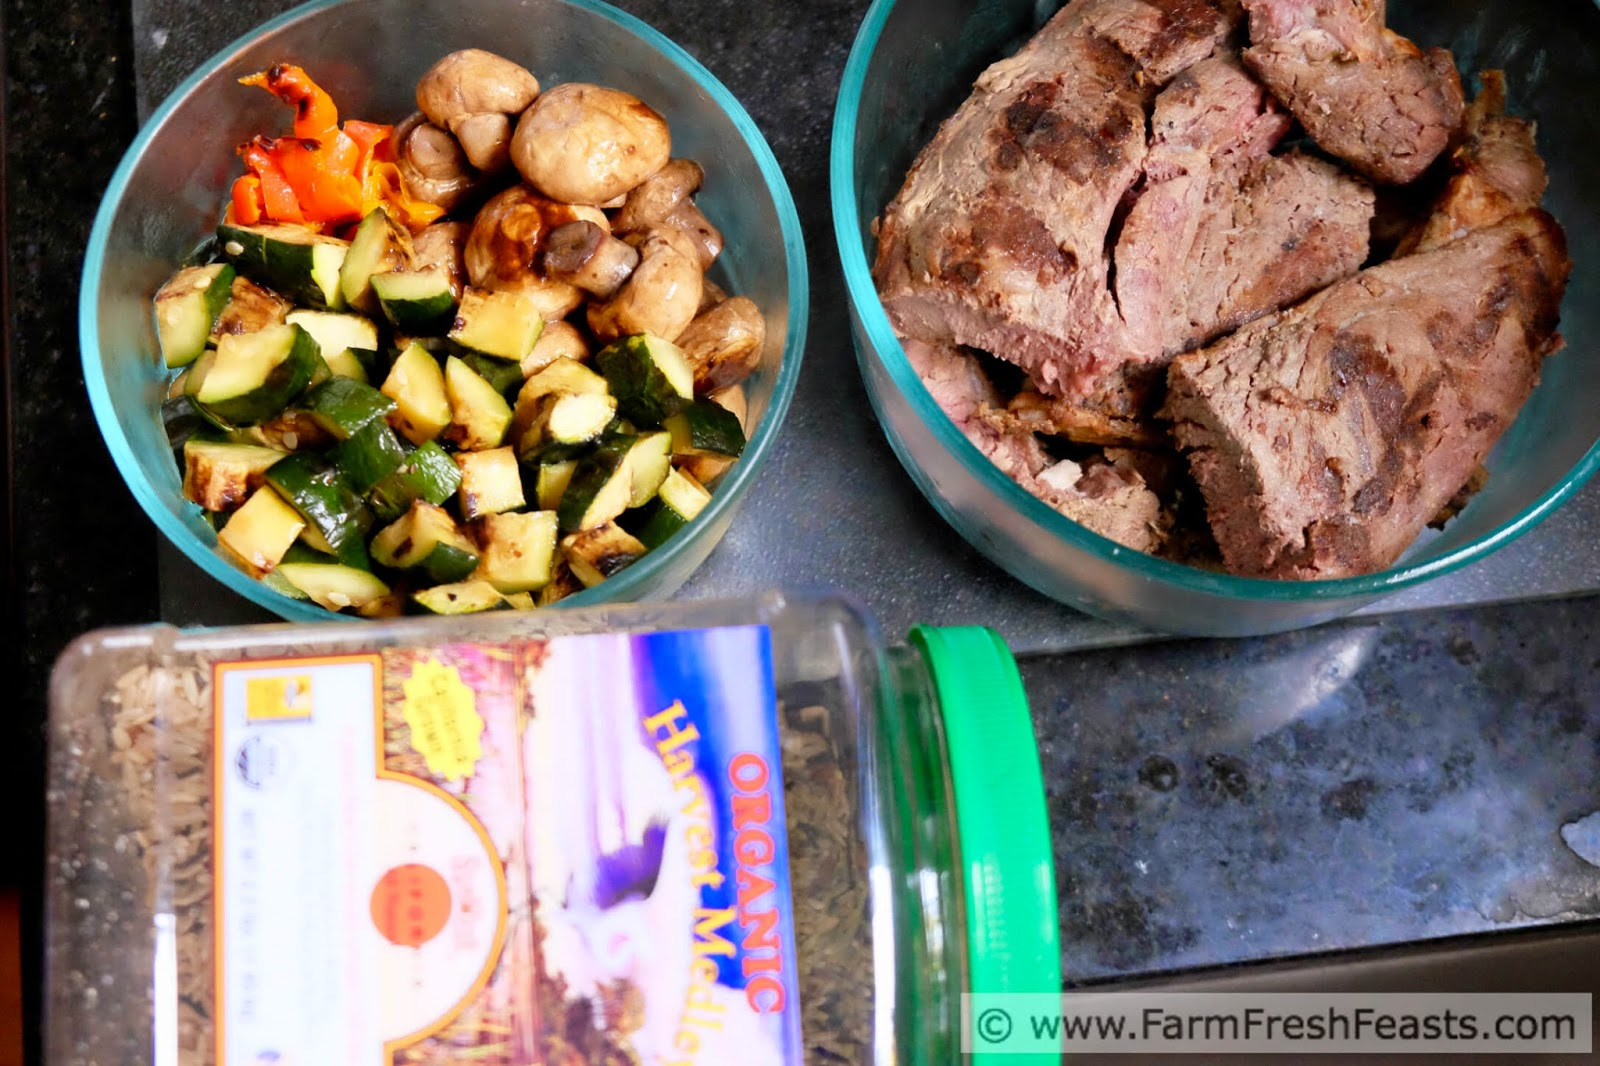 http://www.farmfreshfeasts.com/2015/05/grilled-steak-vegetable-wild-rice-salad.html